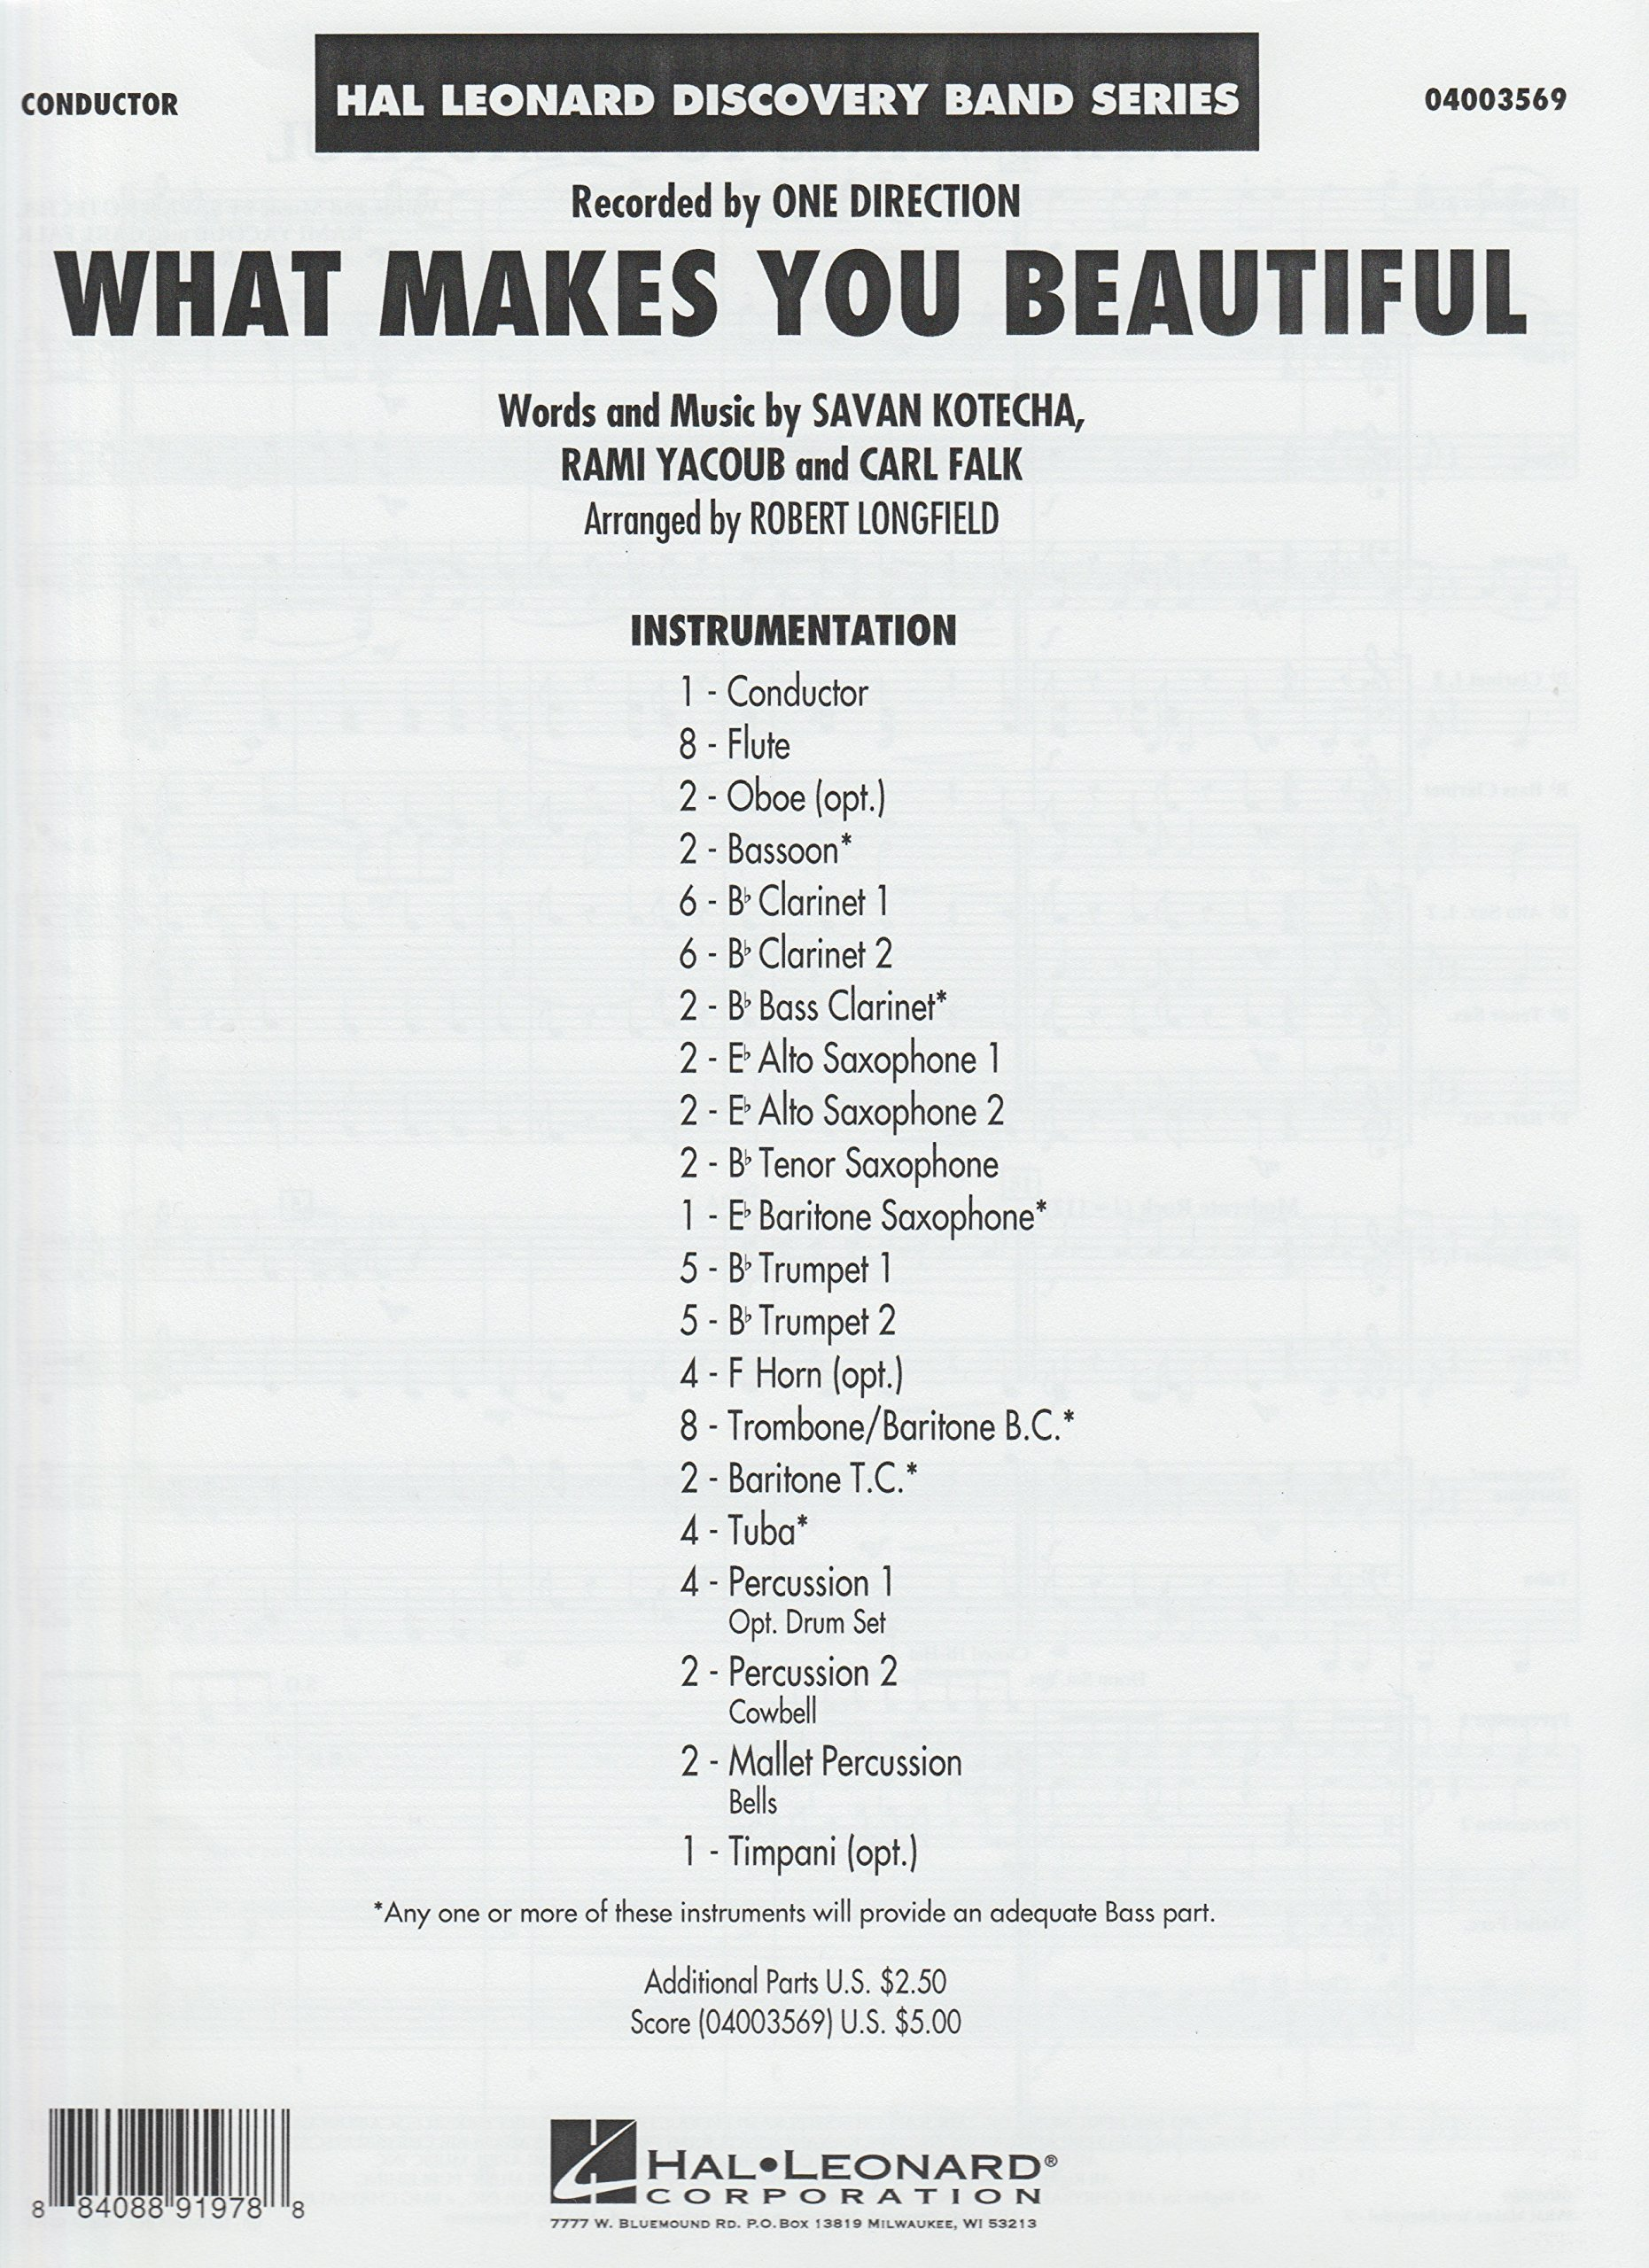 What Makes You Beautiful. Series: Discovery Concert Band. Score. Artist: One Direction. Composers: Carl Falk, Savan Kotecha, Rami Yacoub. Arranger: Robert Longfield. Level: 1.5. Score Only. pdf epub